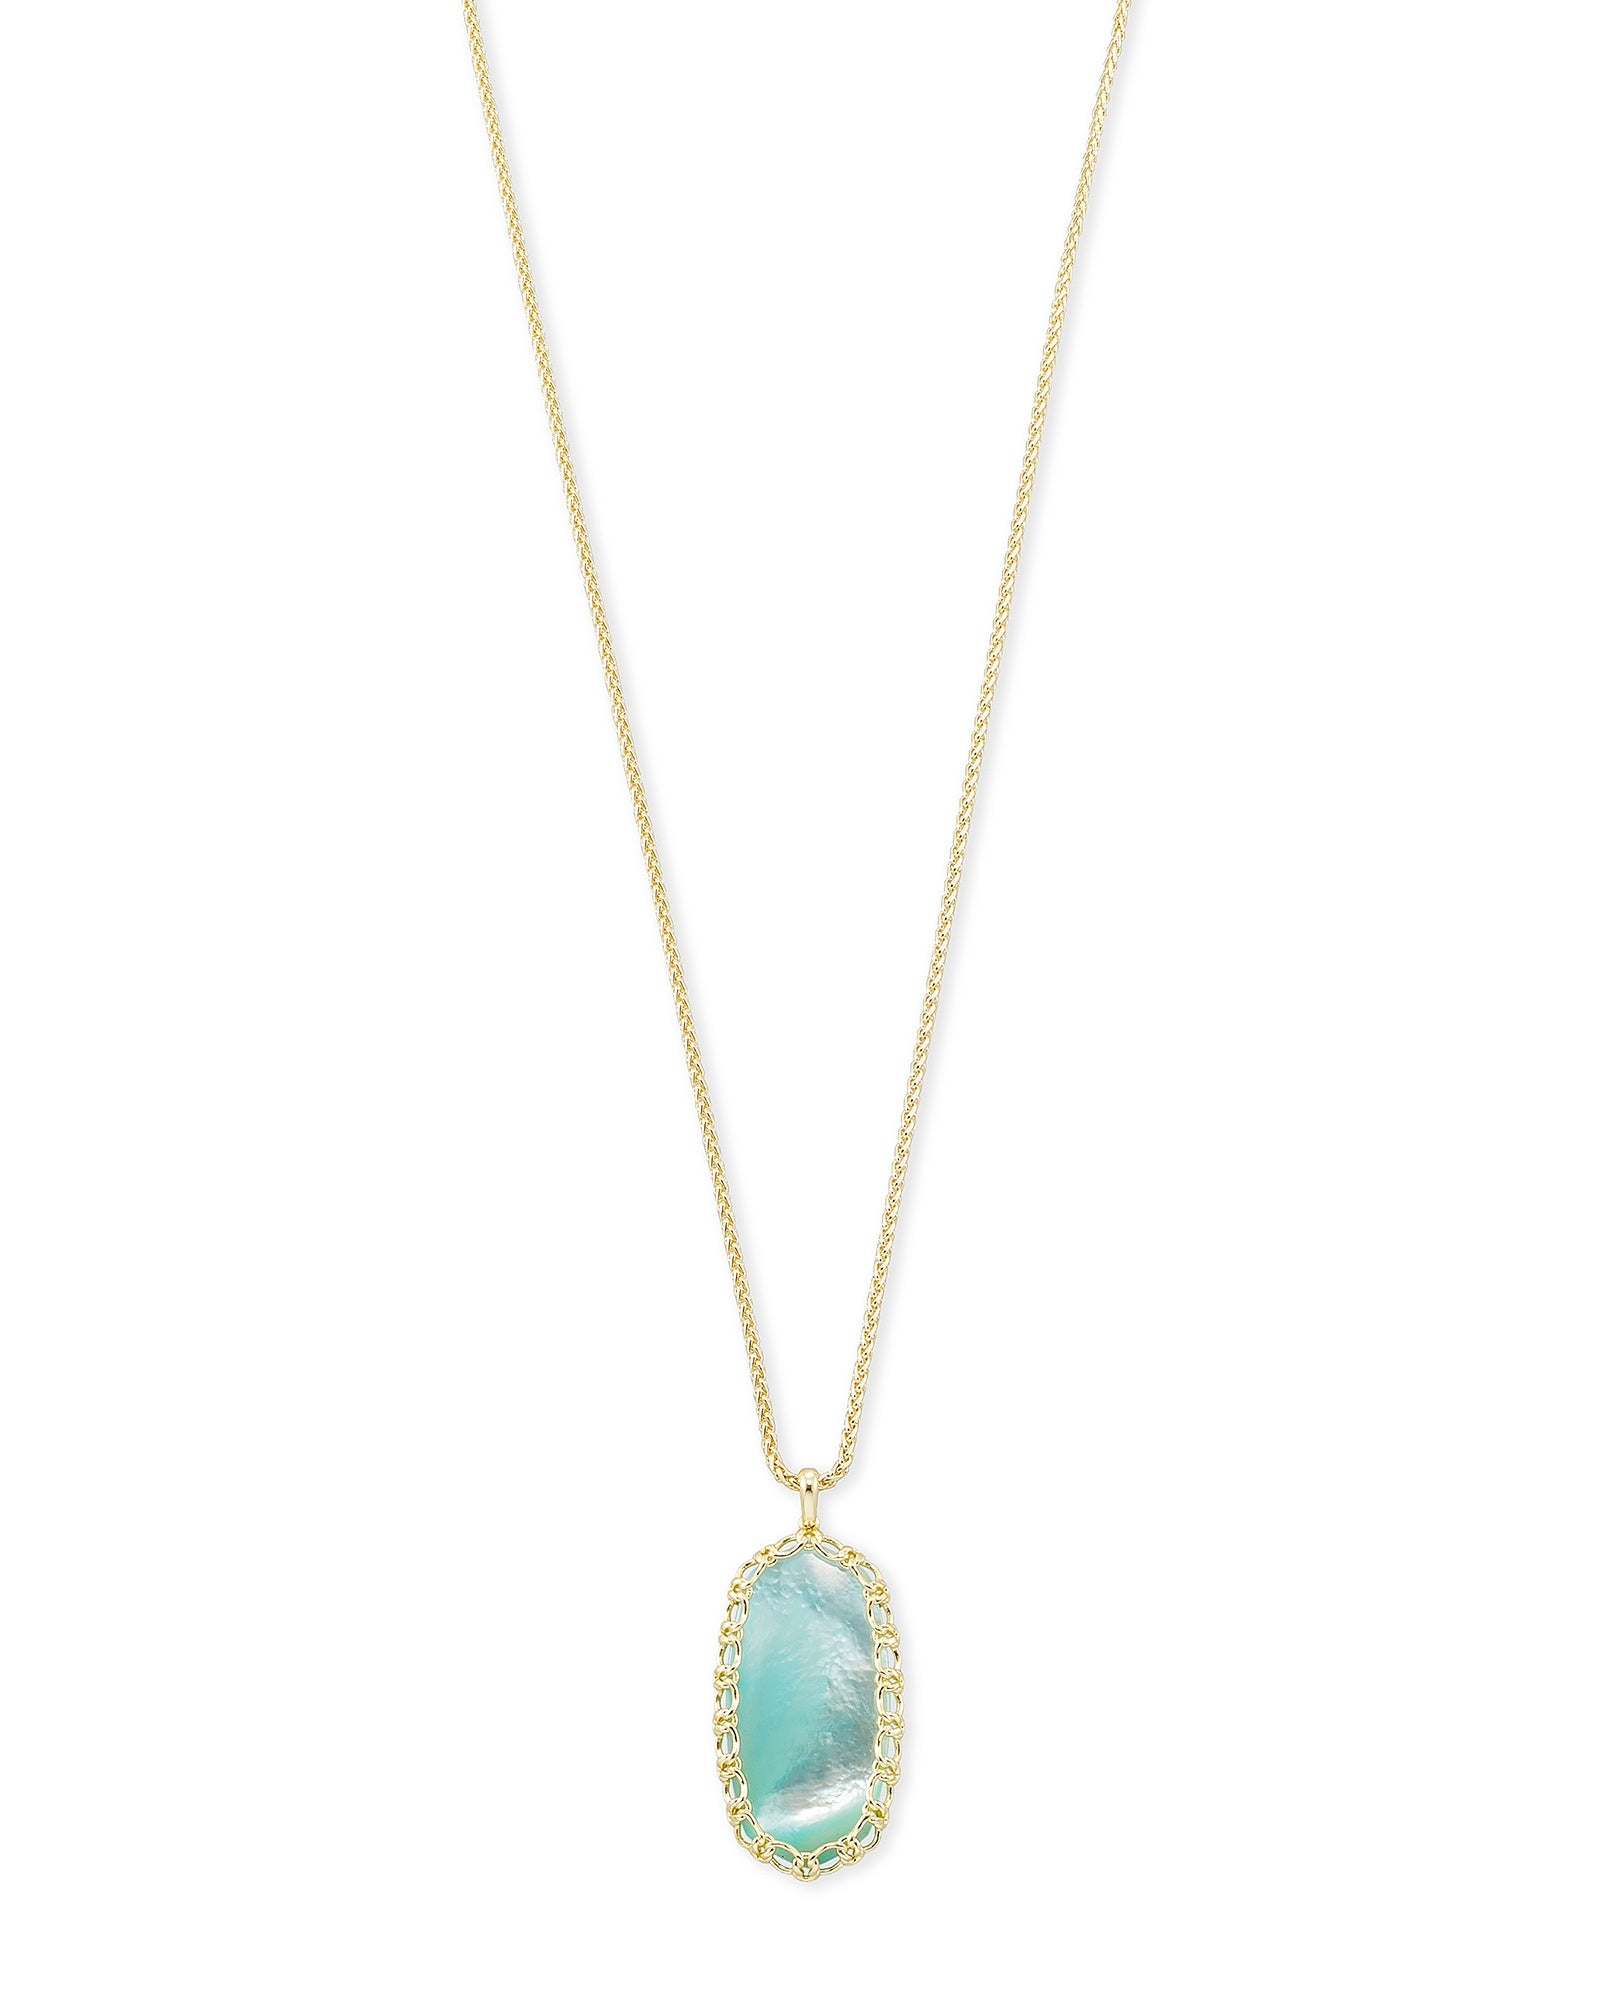 MACRAME REID NECKLACE GOLD AQUA ILLUSION